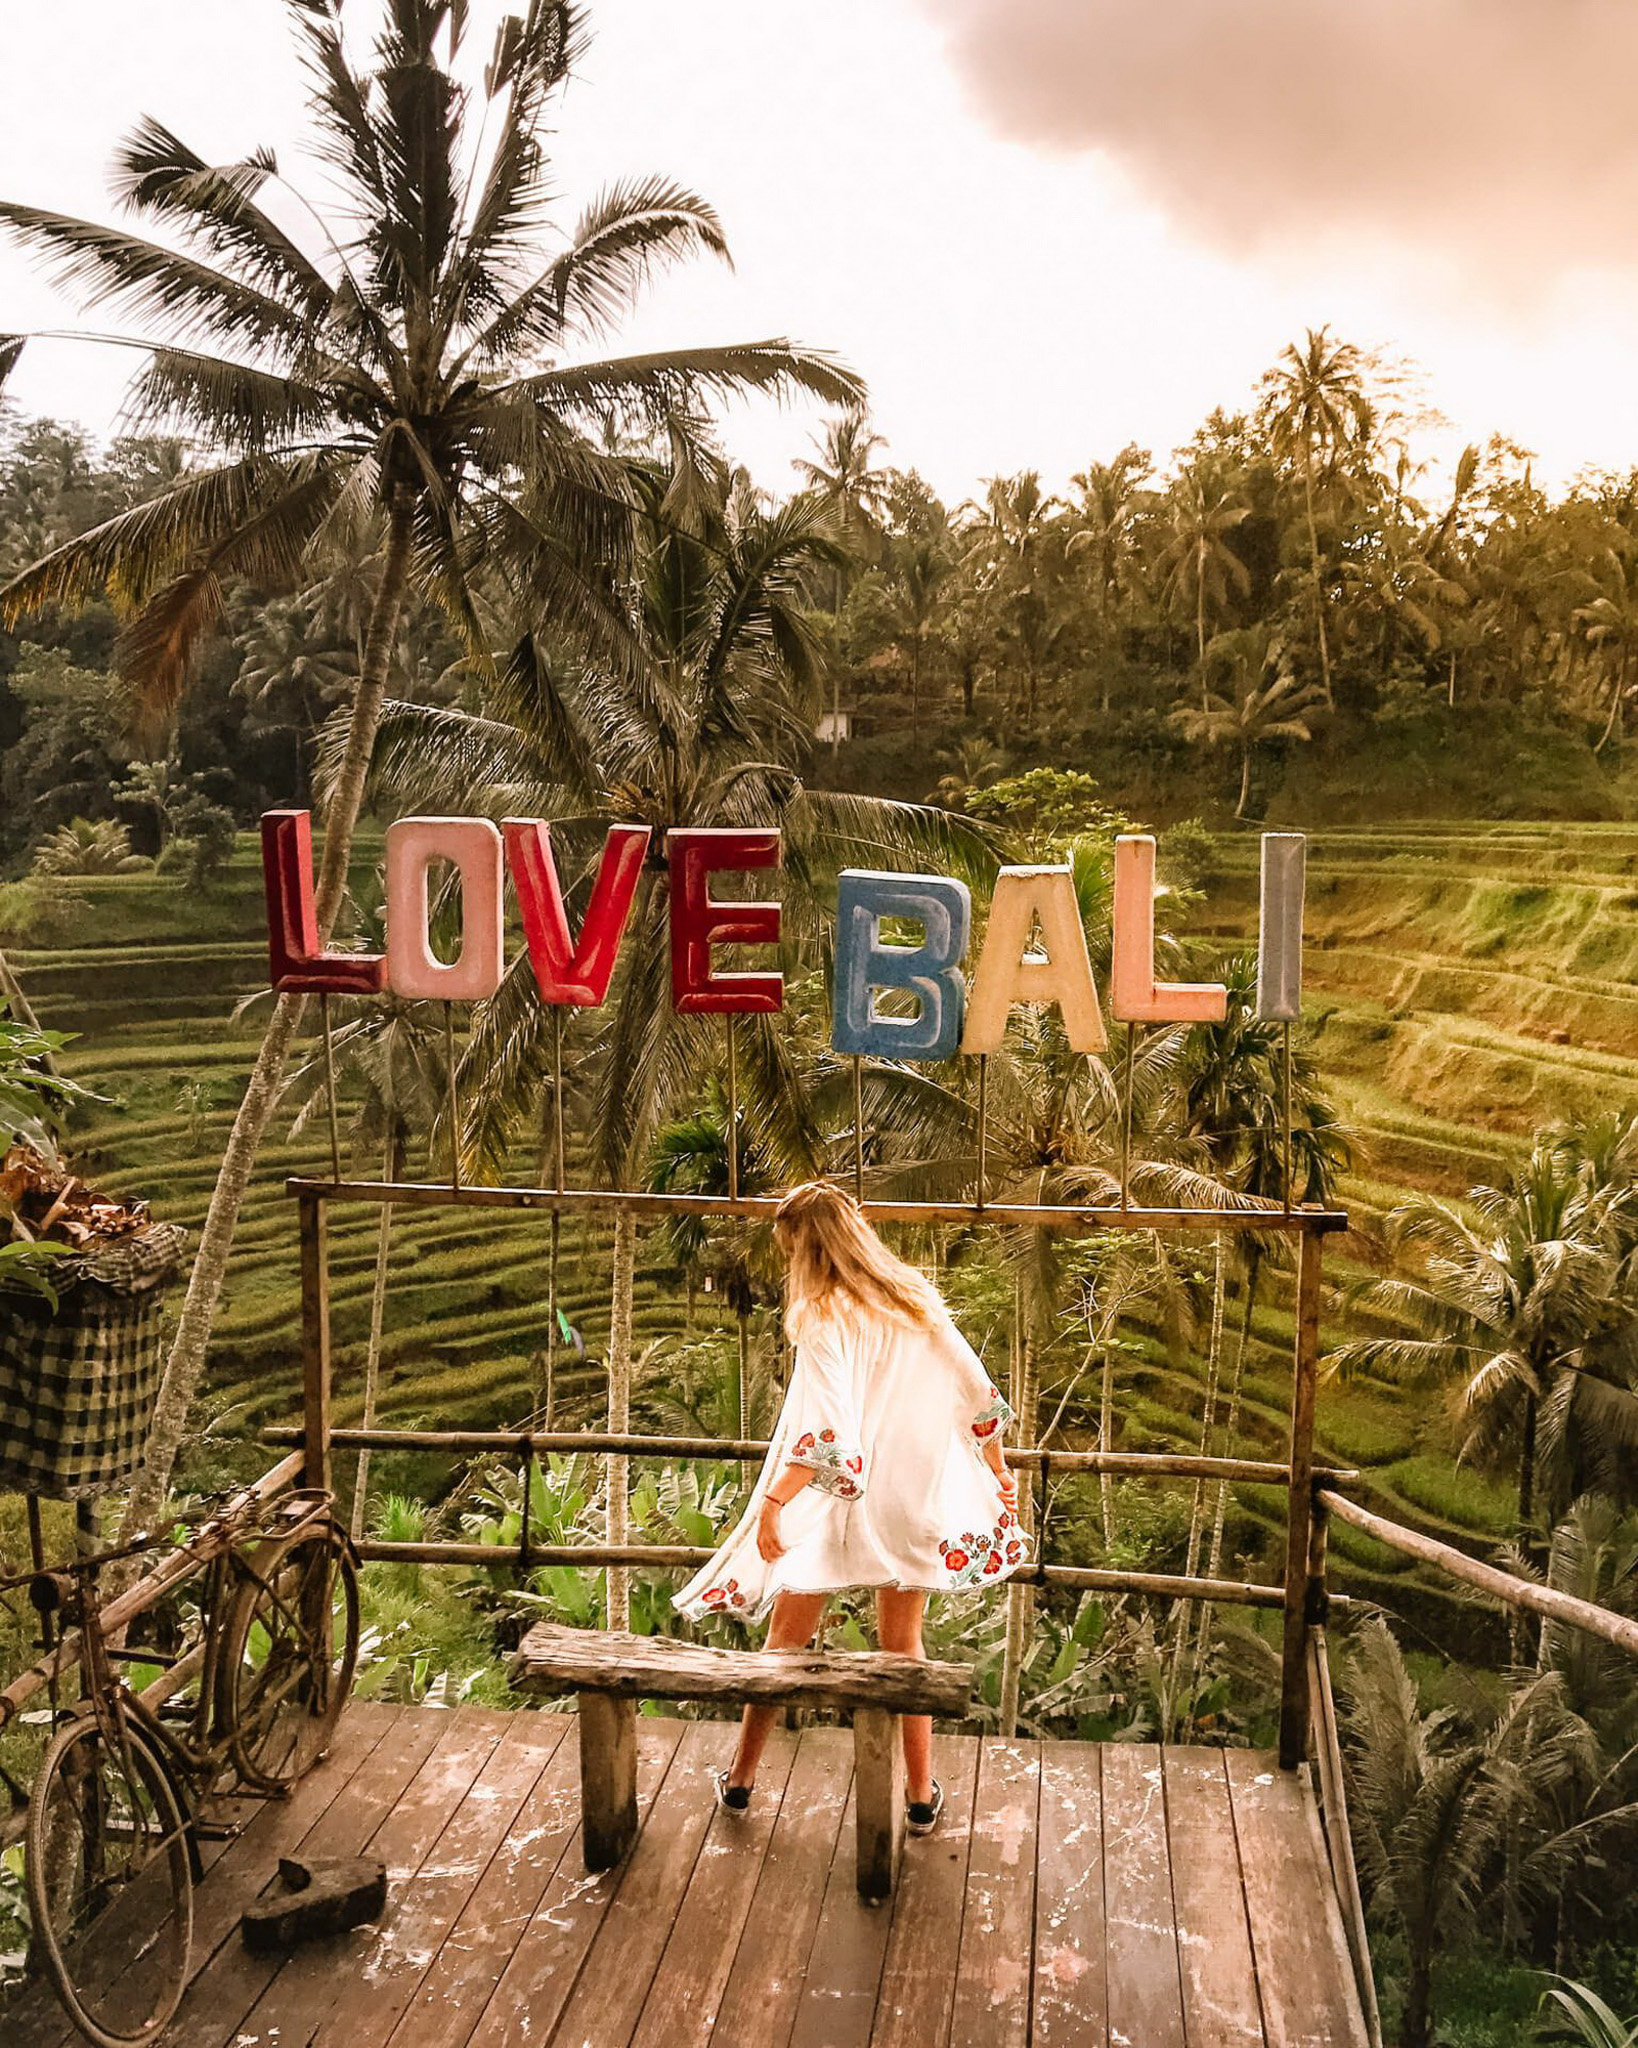 Tegalalang Rice Terrace, Ubud Bali Indonesia - Arecales, Bench, Bicycle, Outdoor bench, Outdoor furniture, Outdoor structure, Palm tree, Plantation